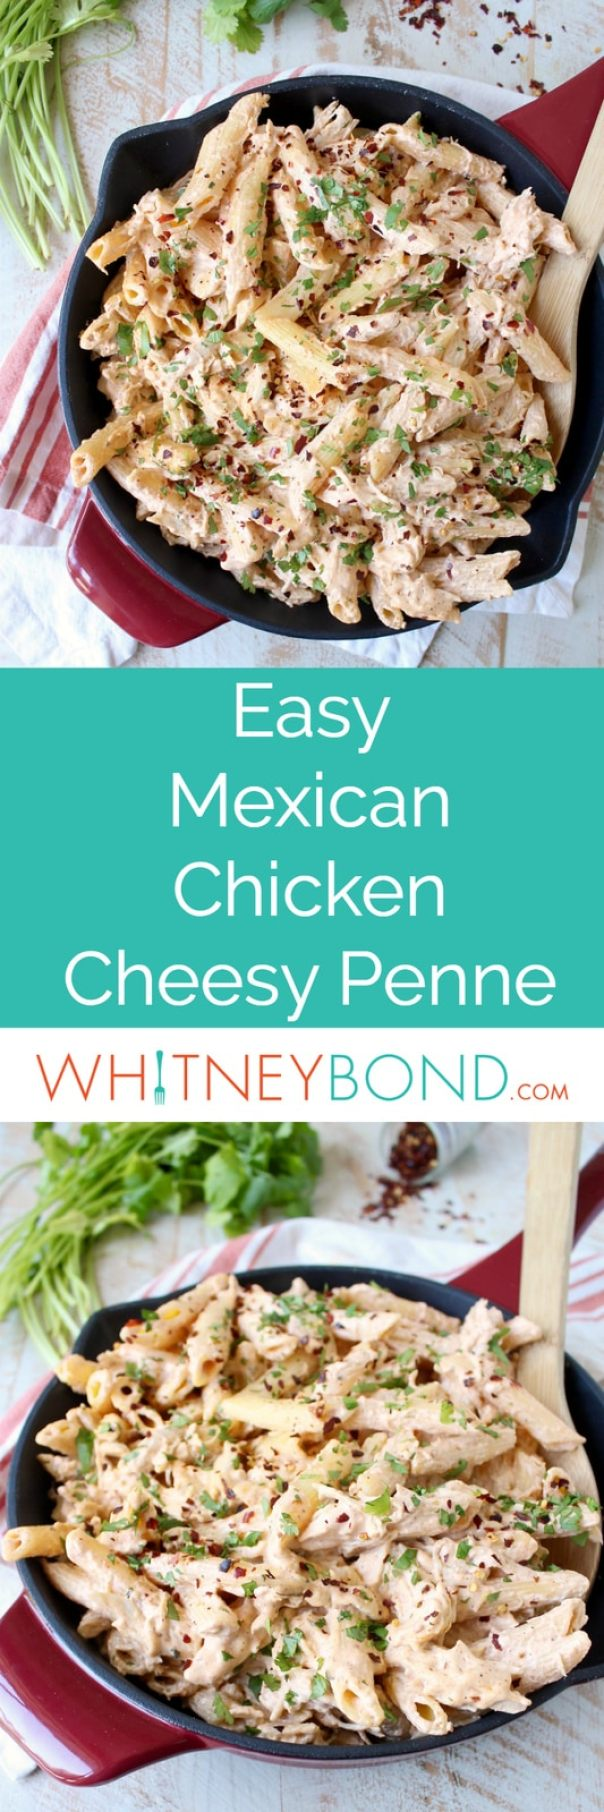 Spicy Mexican Chicken Cheesy Penne Pasta is a simple recipe that is quick and easy to whip up for a weeknight dinner in under 30 minutes!